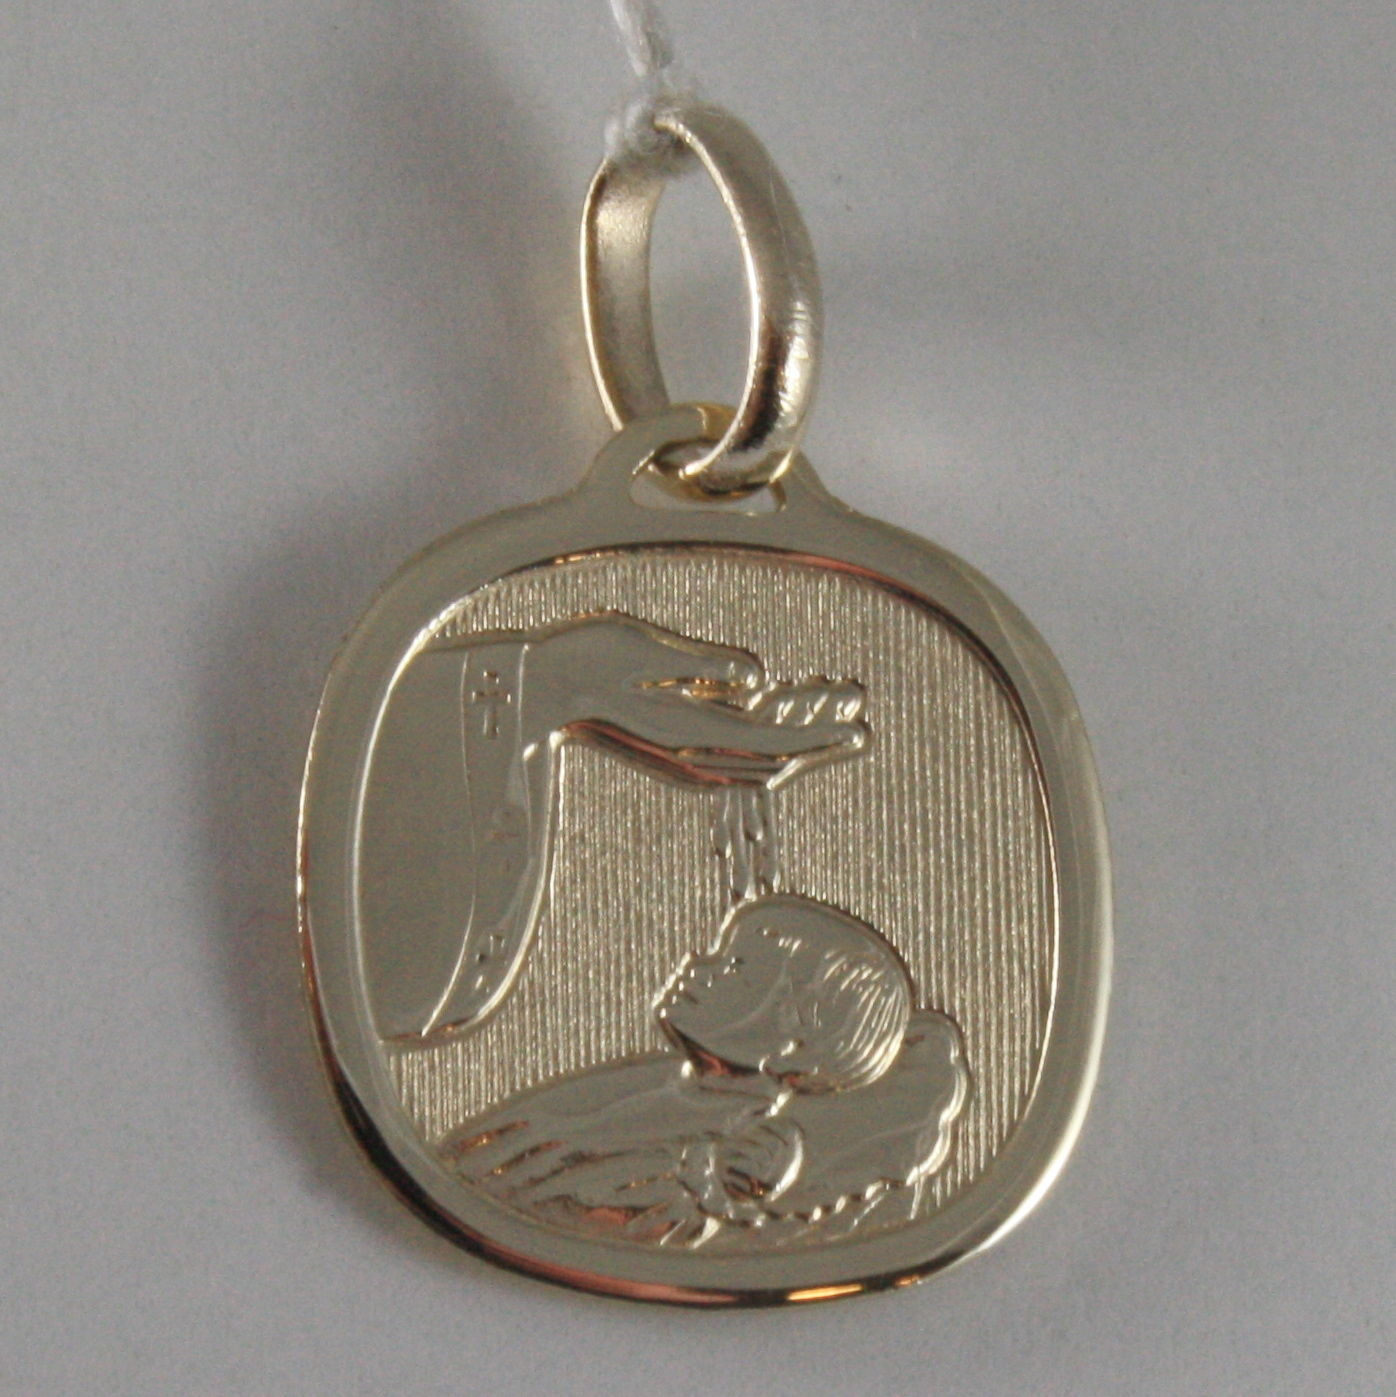 SOLID 9K YELLOW GOLD REMEMBRANCE OF BAPTISM MEDAL, MADE IN ITALY, 9KT ENGRAVABLE